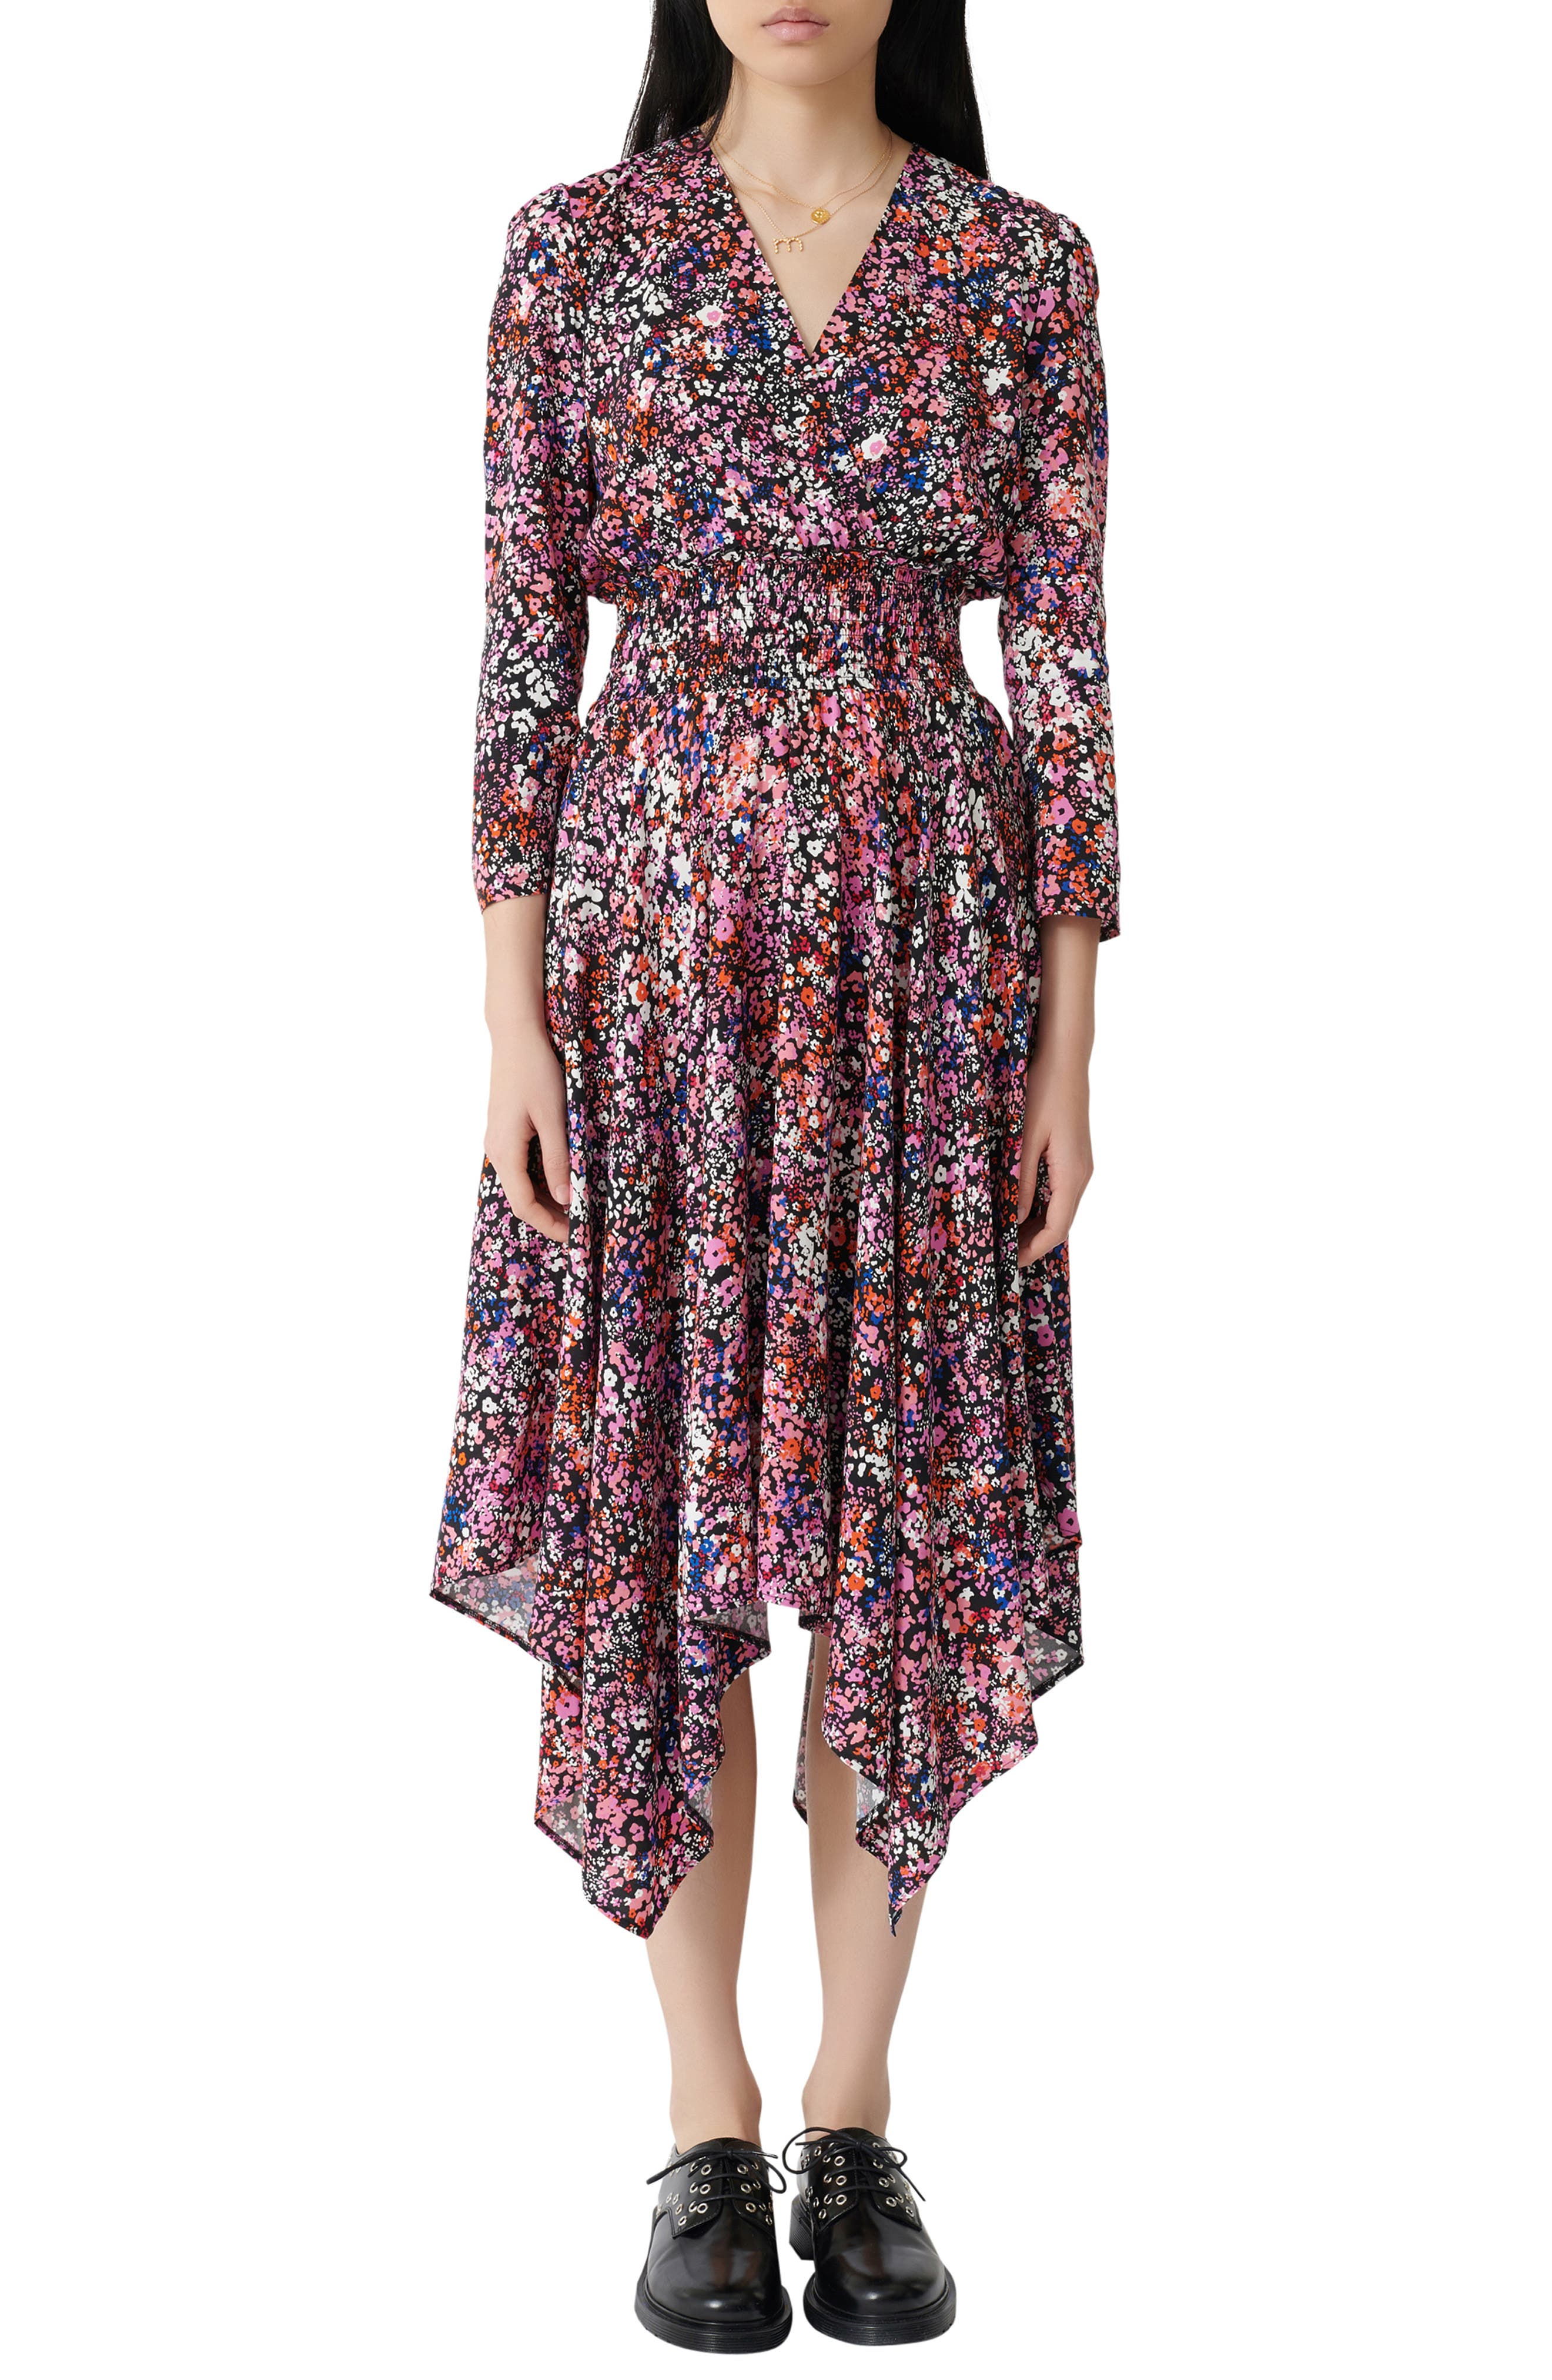 Charm all day long in this fanciful floral-print midi styled with a wrapped bodice, smocked waist and a handkerchief hem. Style Name: Maje Floral Print Midi Dress. Style Number: 6016980. Available in stores.